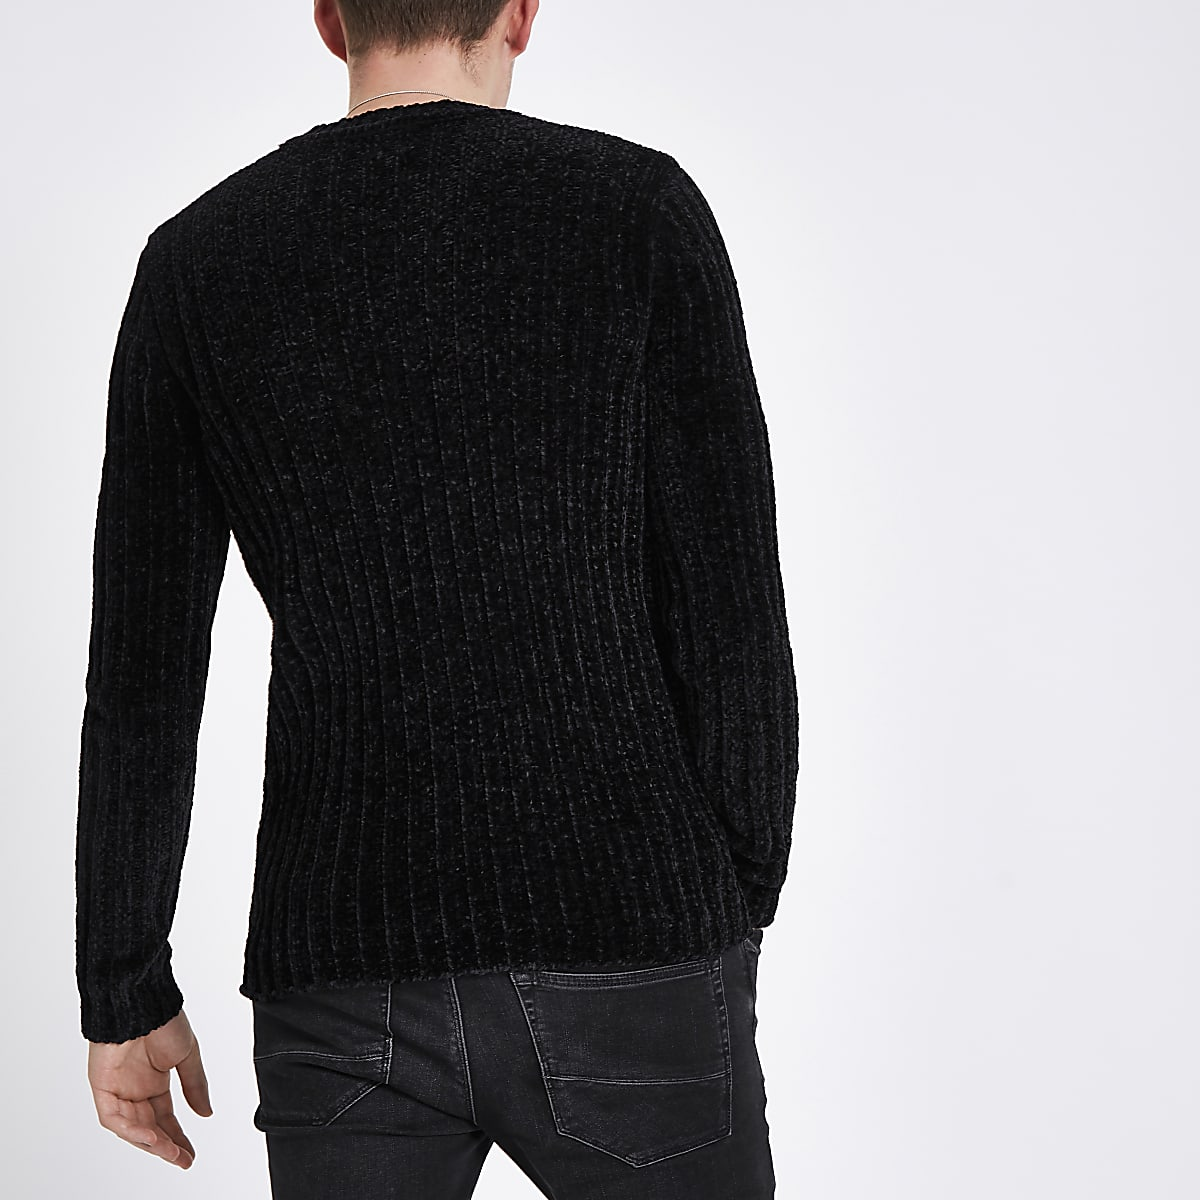 56b45aa4af1989 Black muscle fit chenille knit sweater - Sweaters - Sweaters ...